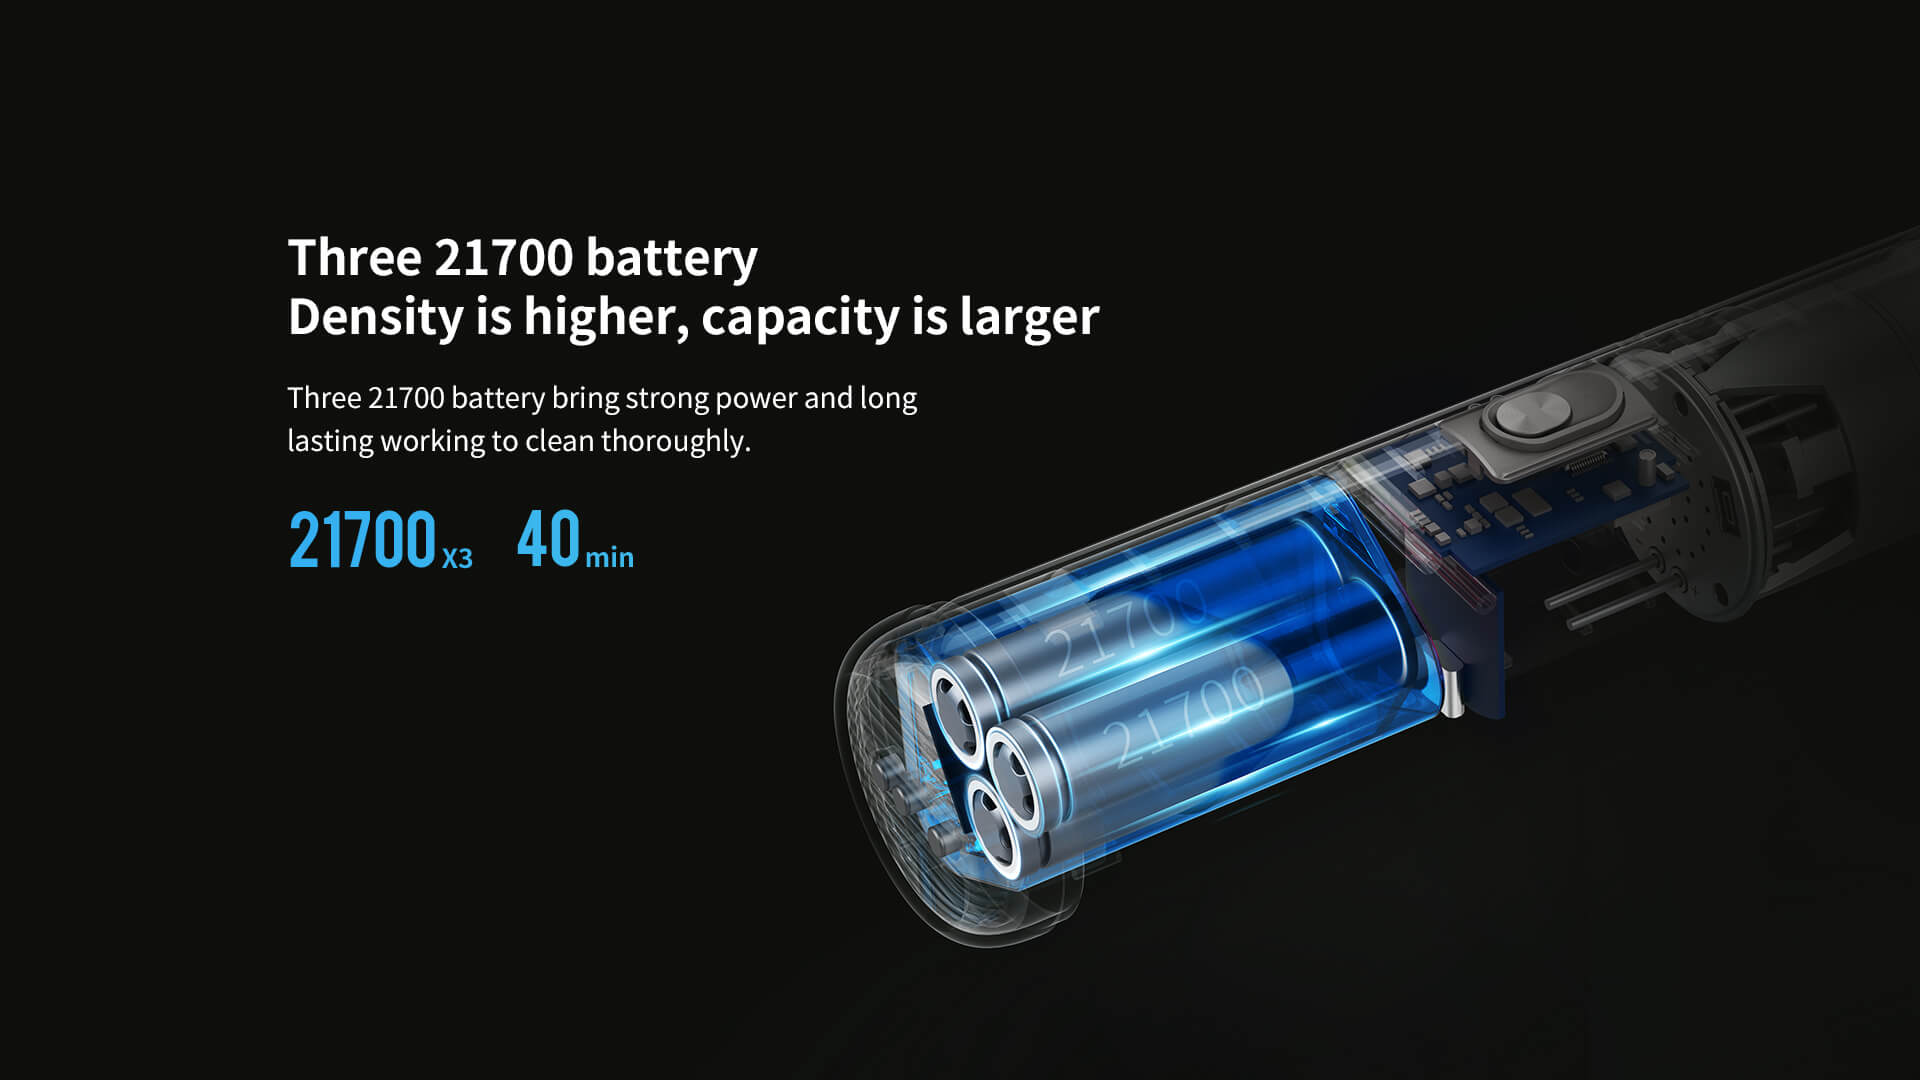 Three 21700 battery density is hight, capacity is larger, bring strong power and long lasting working to clean thoroughly.